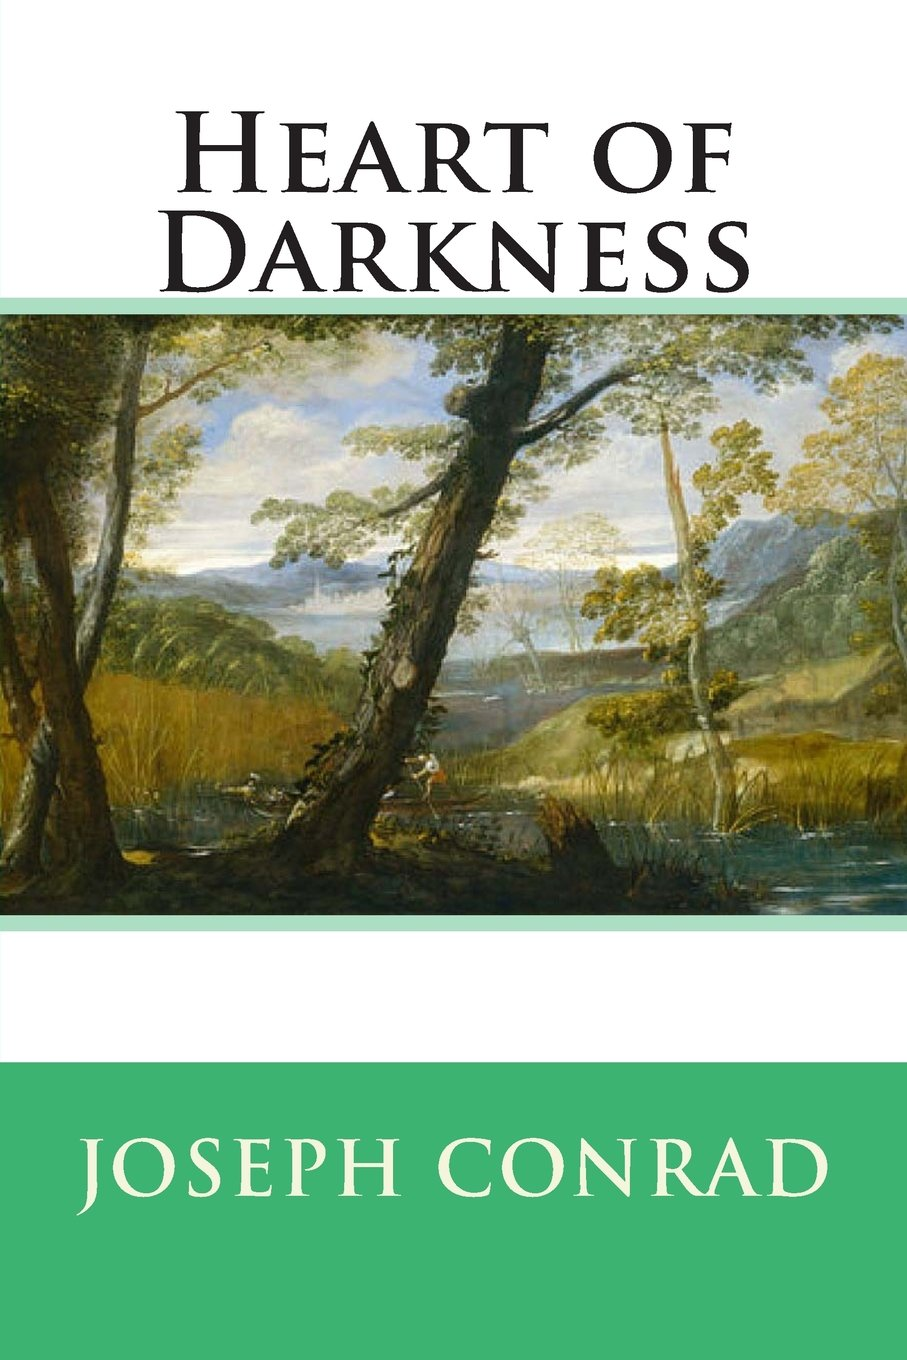 an overview of the character marlow in the heart of darkness by joseph conrad Joseph conrad's heart of darkness retells the story of marlow's job as an ivory transporter down the congo through his journey, marlow develops an intense inte.